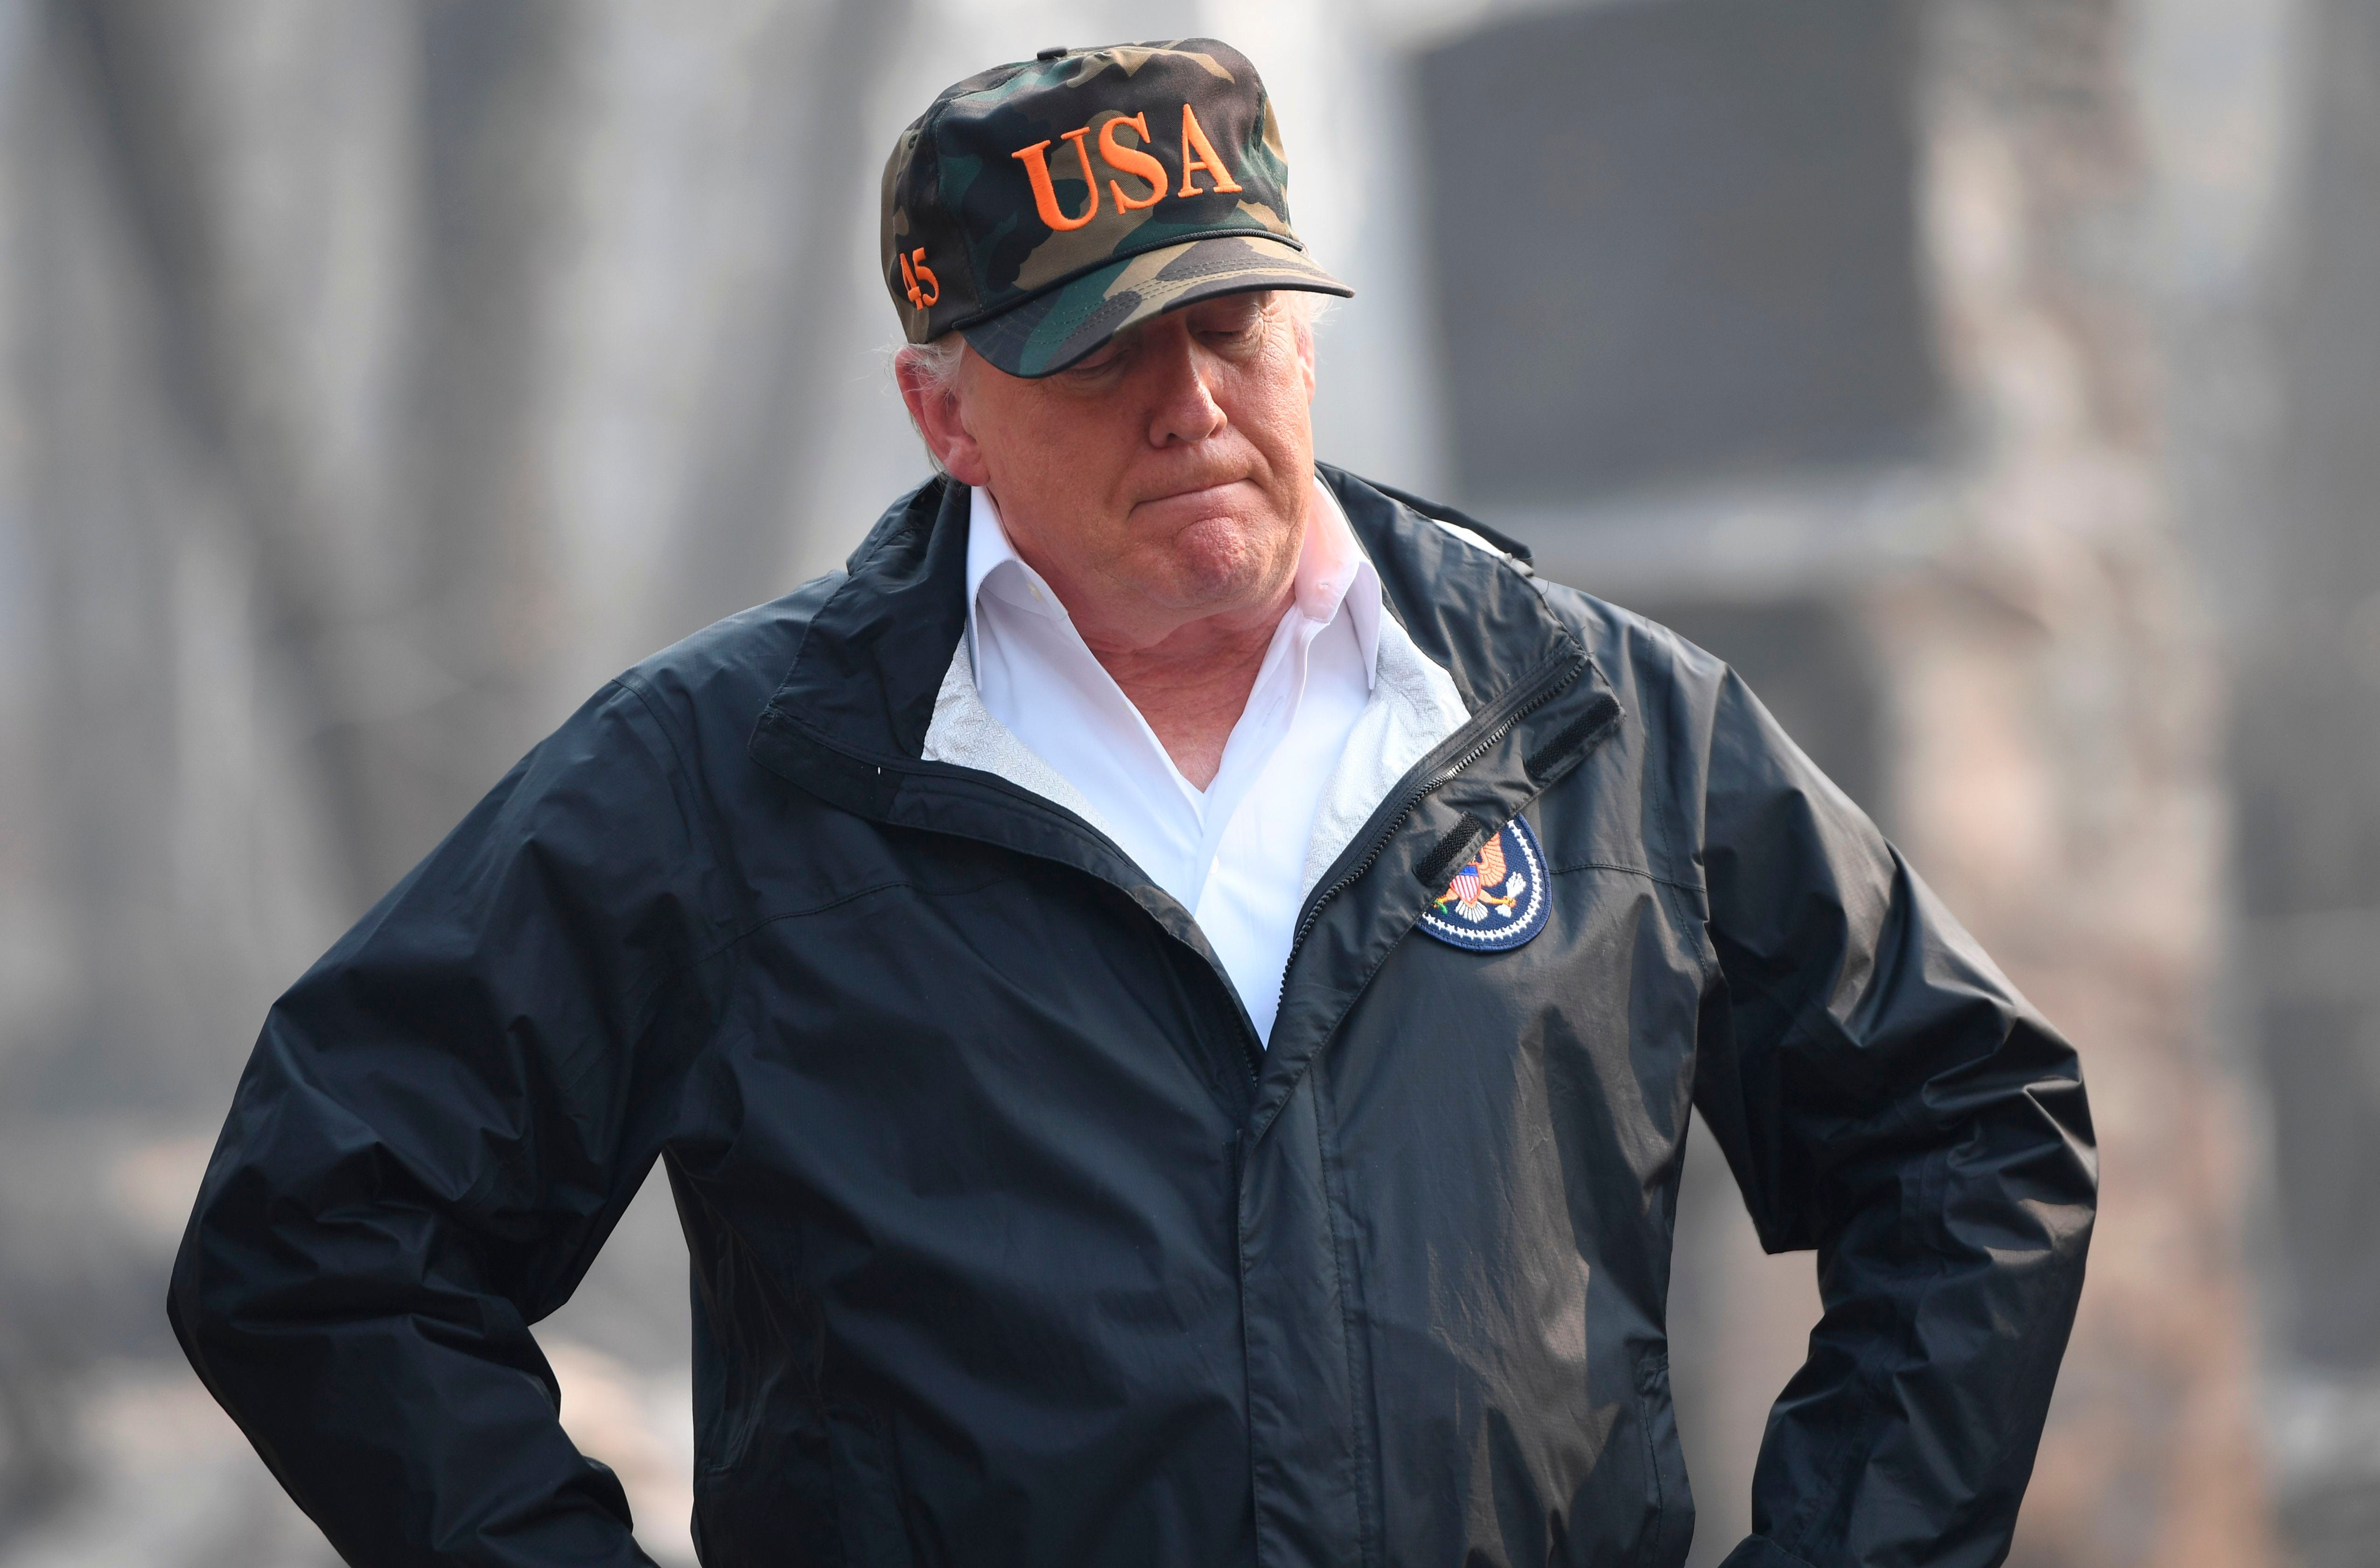 As Trump visits tornado victims in Alabama, is he playing politics with disaster relief?